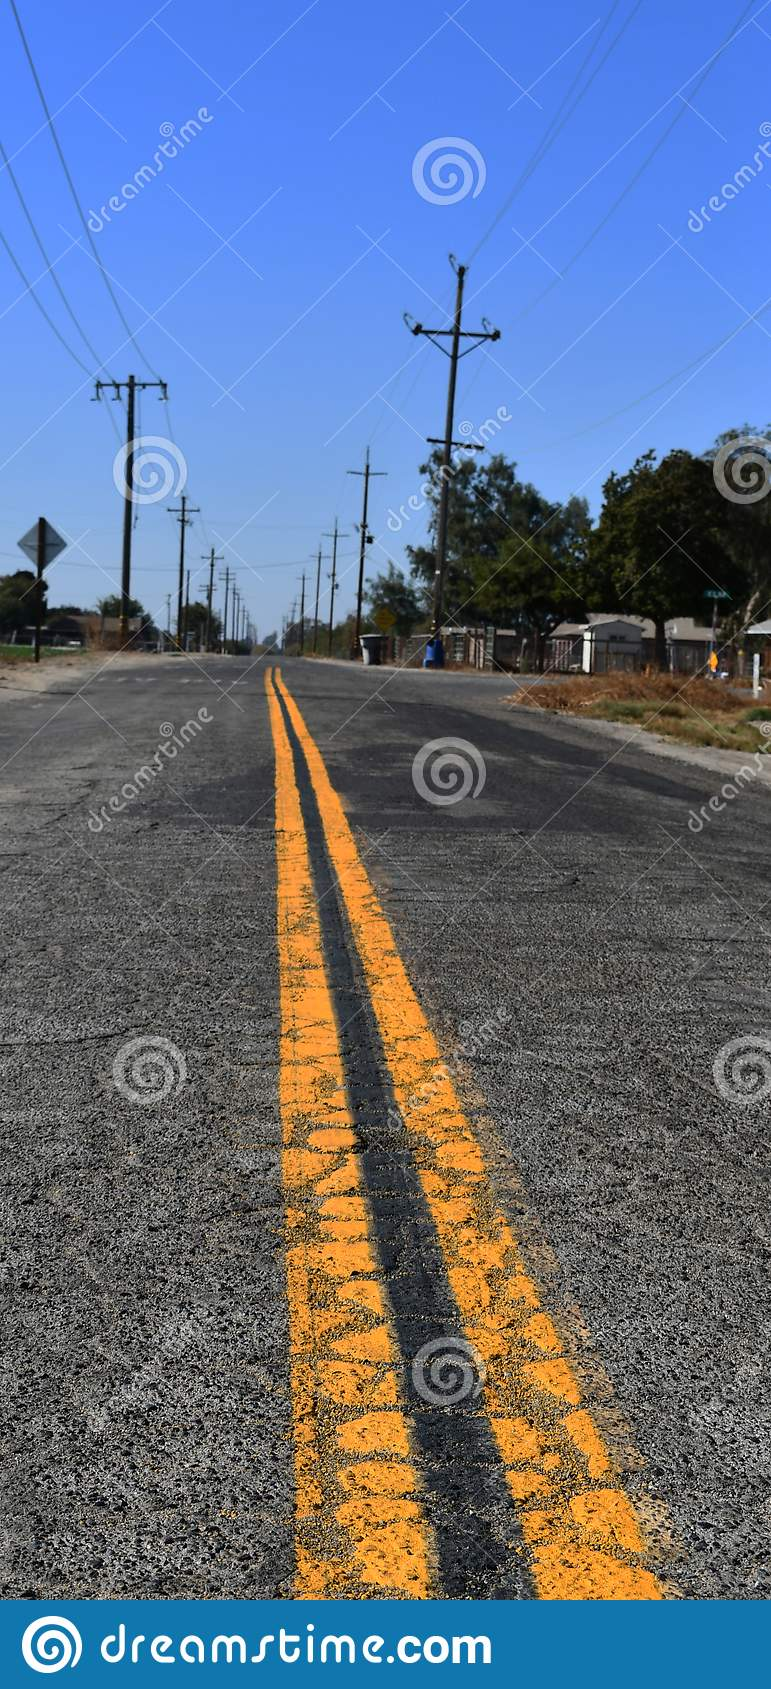 Road driving / asphalt of road for car travel transportation